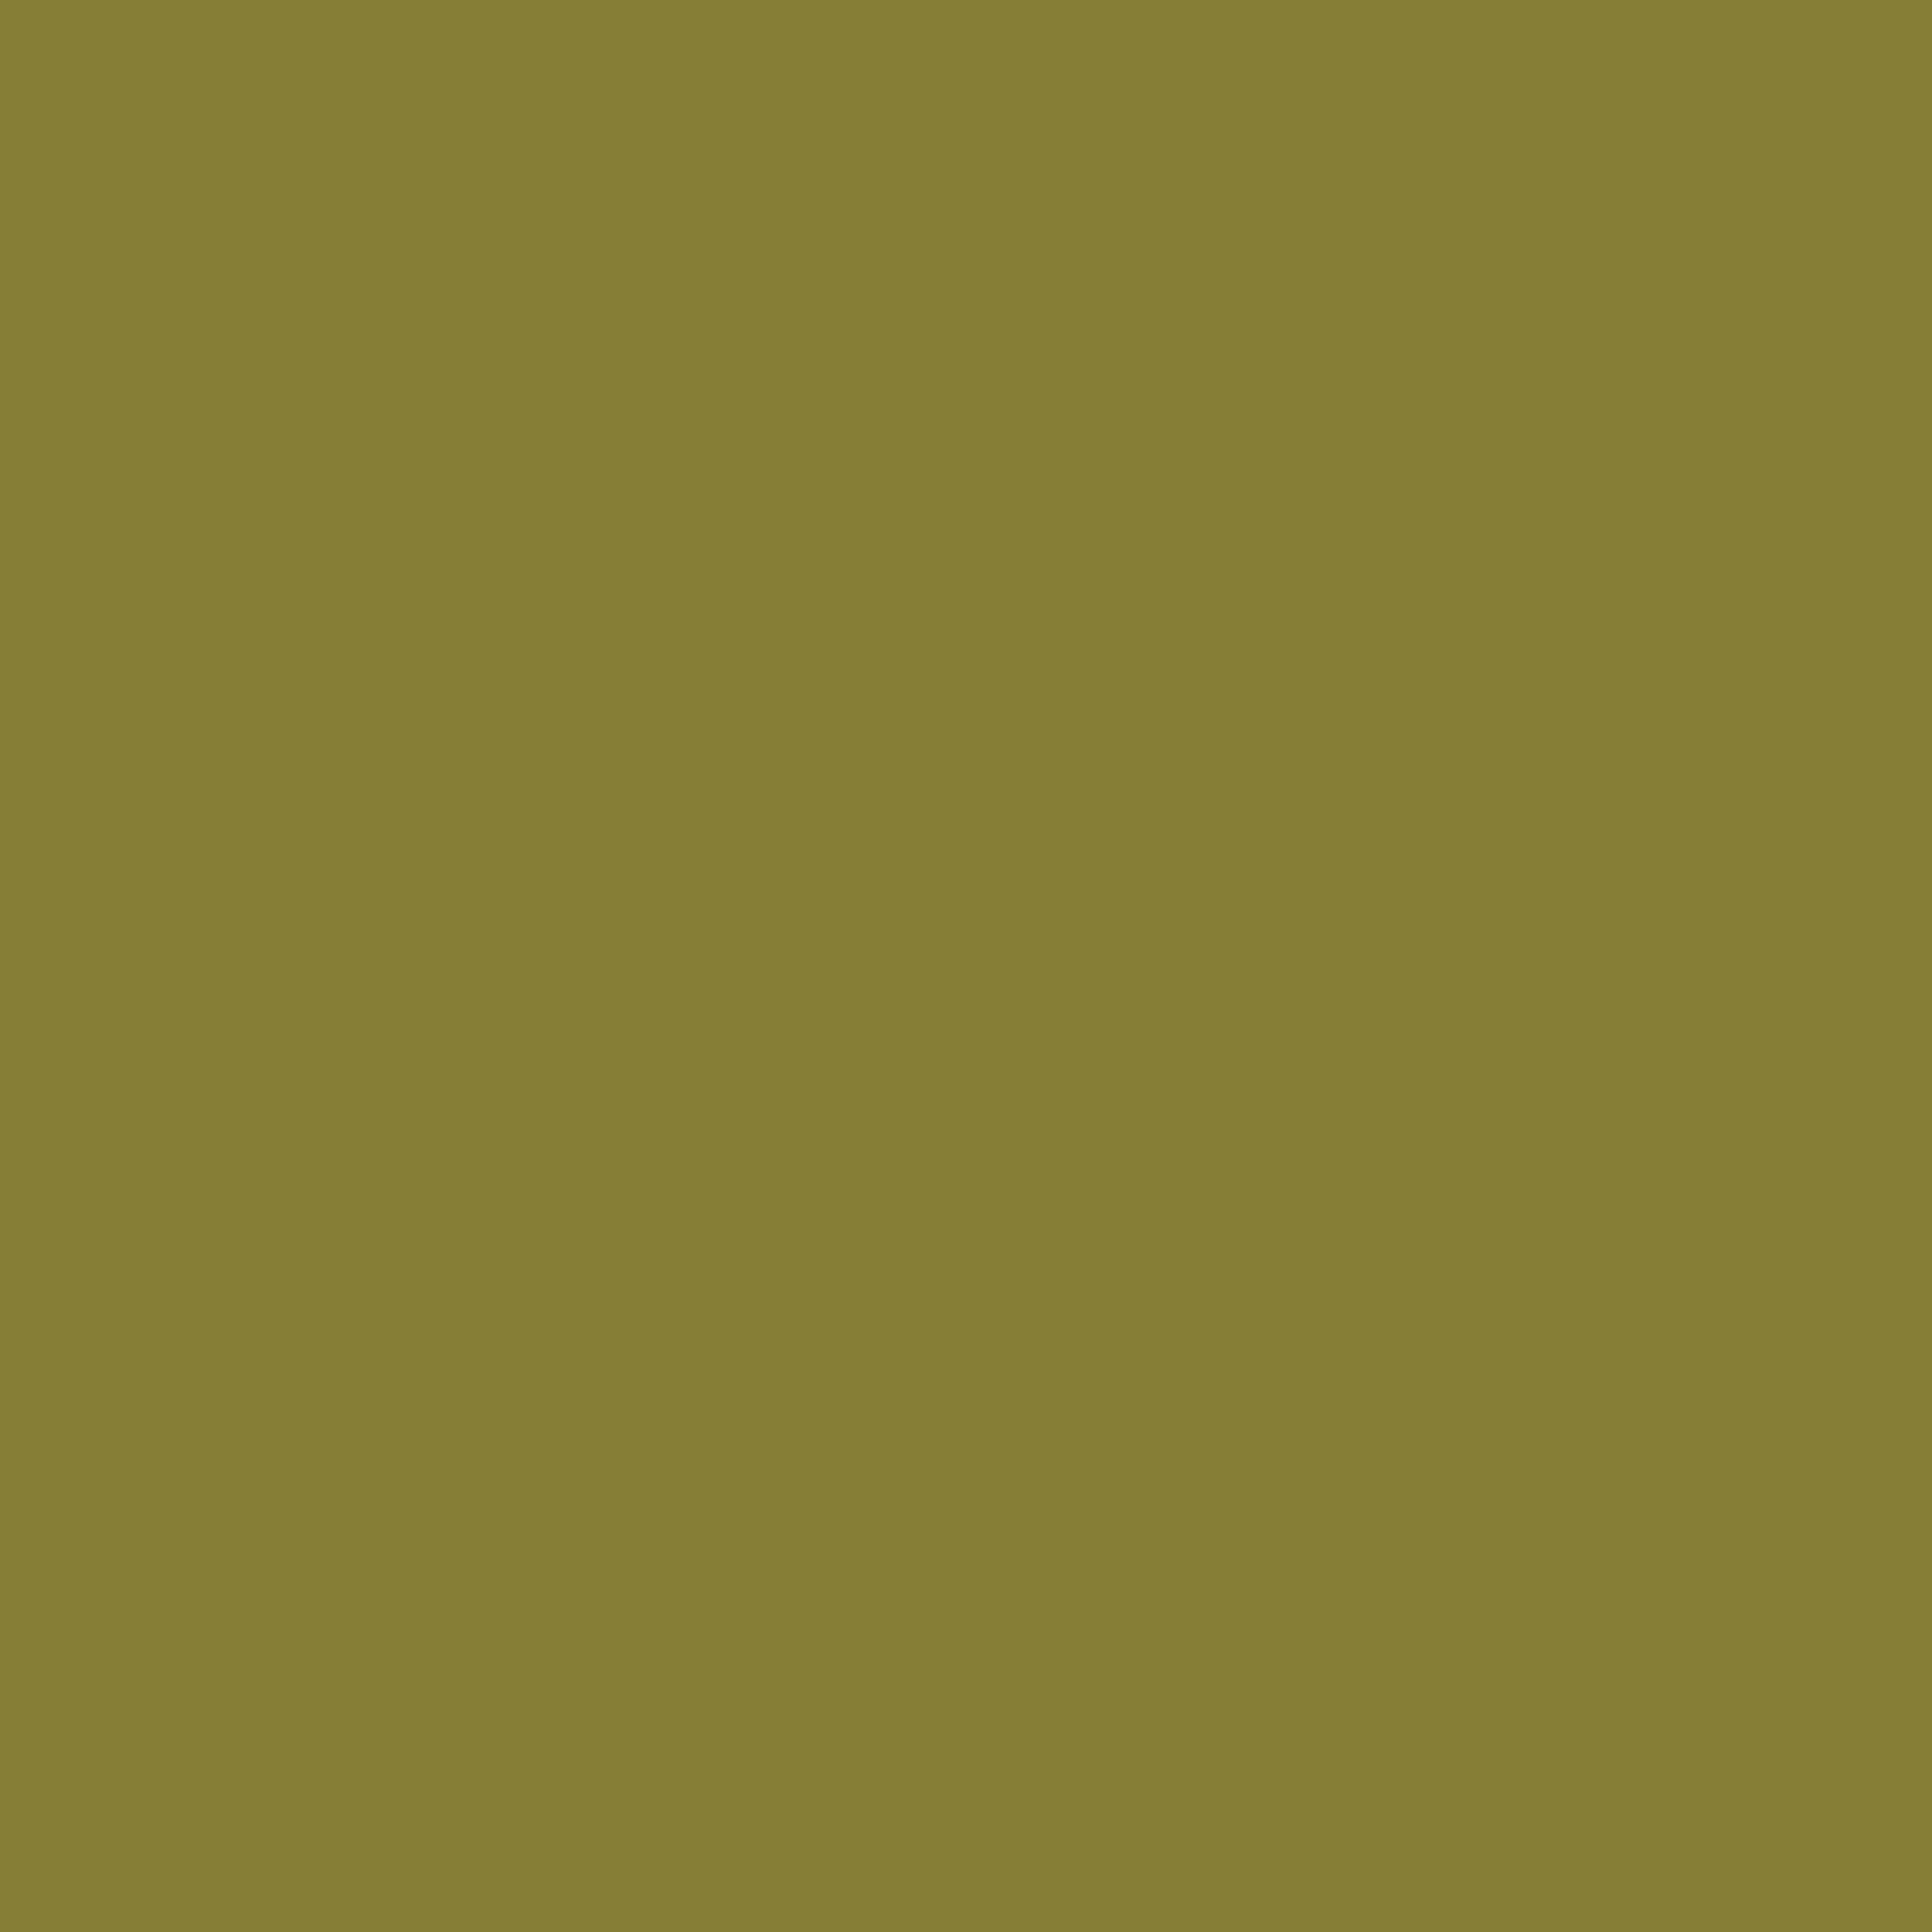 2732x2732 Old Moss Green Solid Color Background